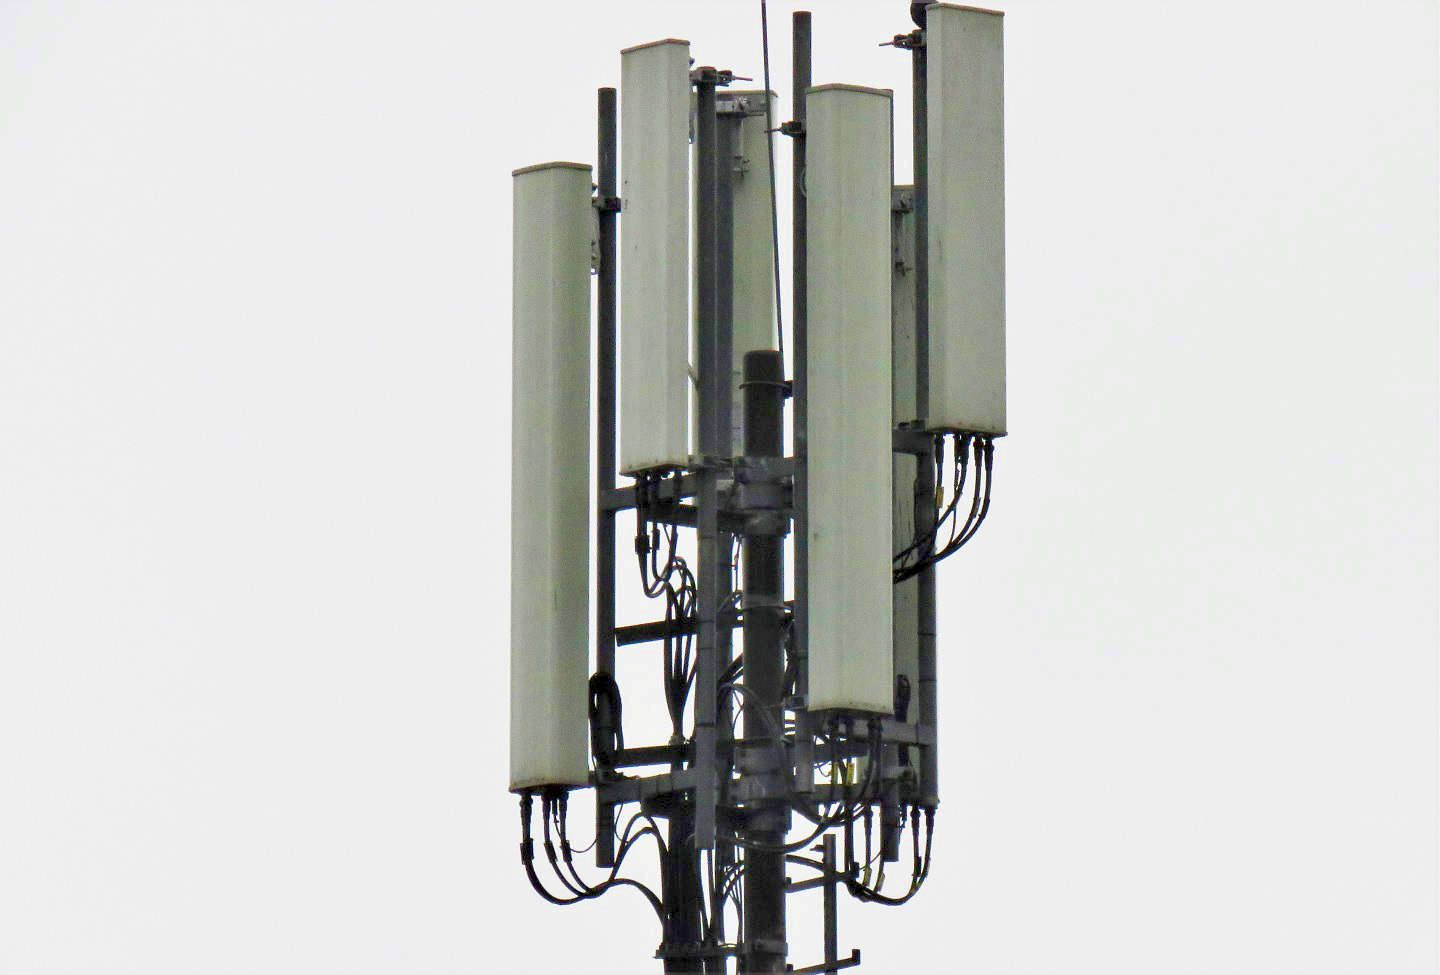 Huawei Antennas used by Orange and T-Mobile